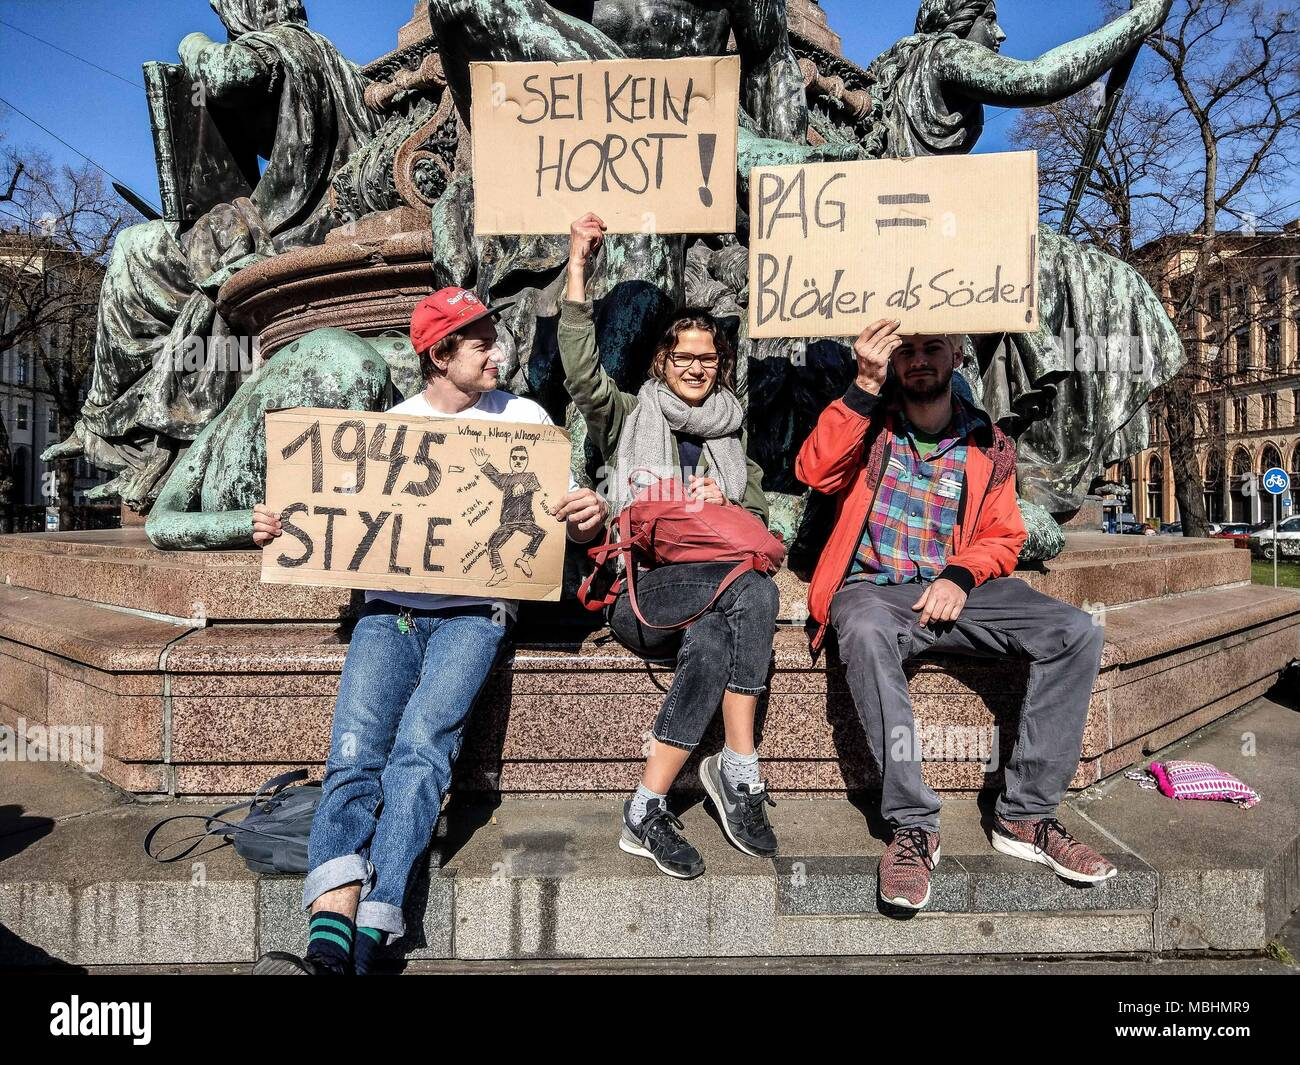 Munich, Bavaria, Germany. 11th Apr, 2018. Lilith (22) and Mariella (22), both students that worry about being put under general suspicion due to political and antifascist engagement. The Green Party Youth (Gruene Jugend) of Munich, along with 120 members of the SPD, JuSos, Mut Bayern, and die Linke demonstrated against the forthcoming Polizeiaufgabengesetze (PAG, Police Assignment Laws) that give police in Bavaria sweeping secret police-like powers that are alleged to be threats to Germany's model democracy. Credit: ZUMA Press, Inc./Alamy Live News - Stock Image